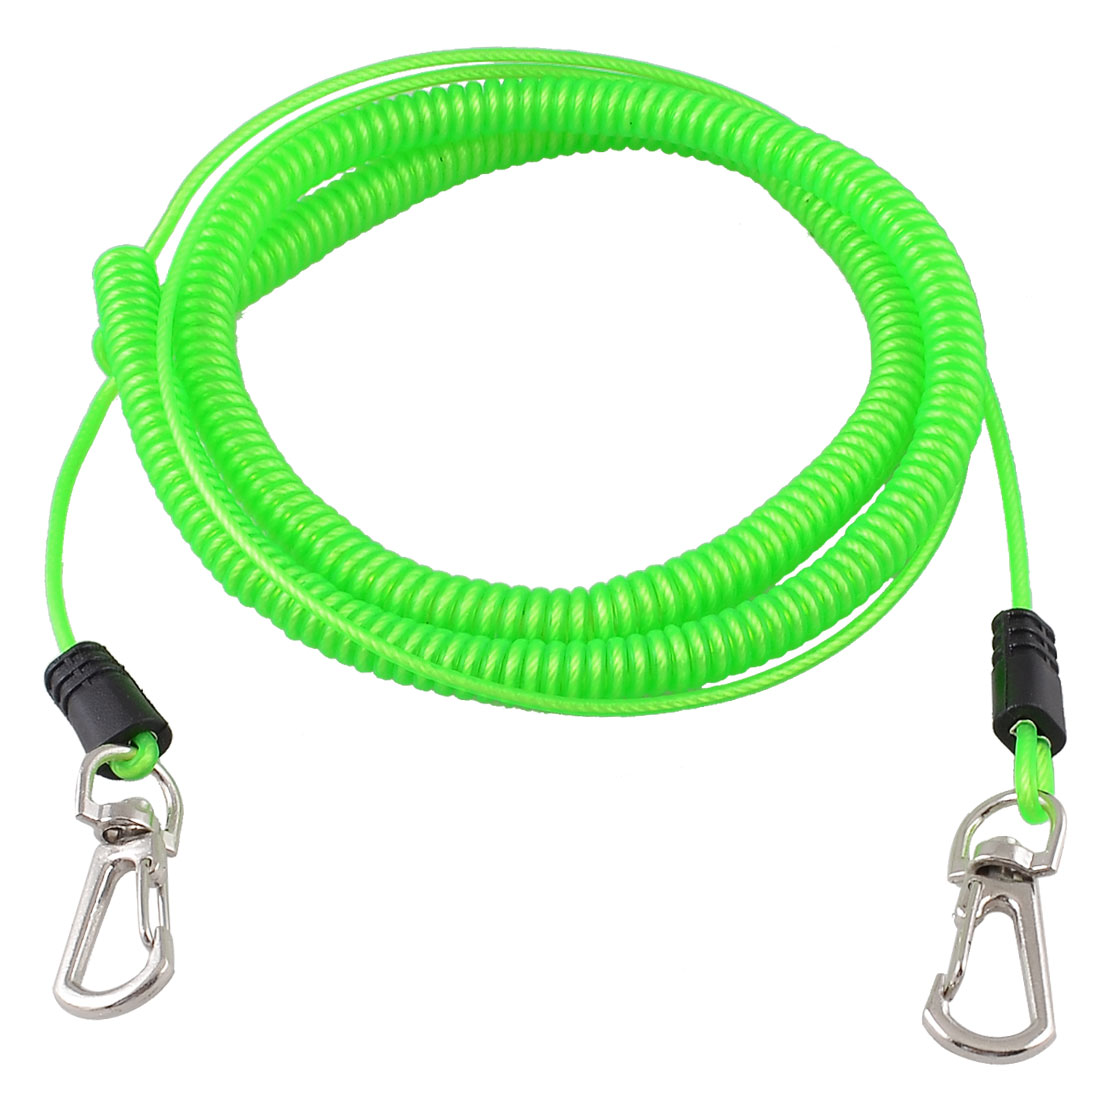 8M Contractility Stretchy Soft Plastic Coiled Fishing Lanyard Rope Green